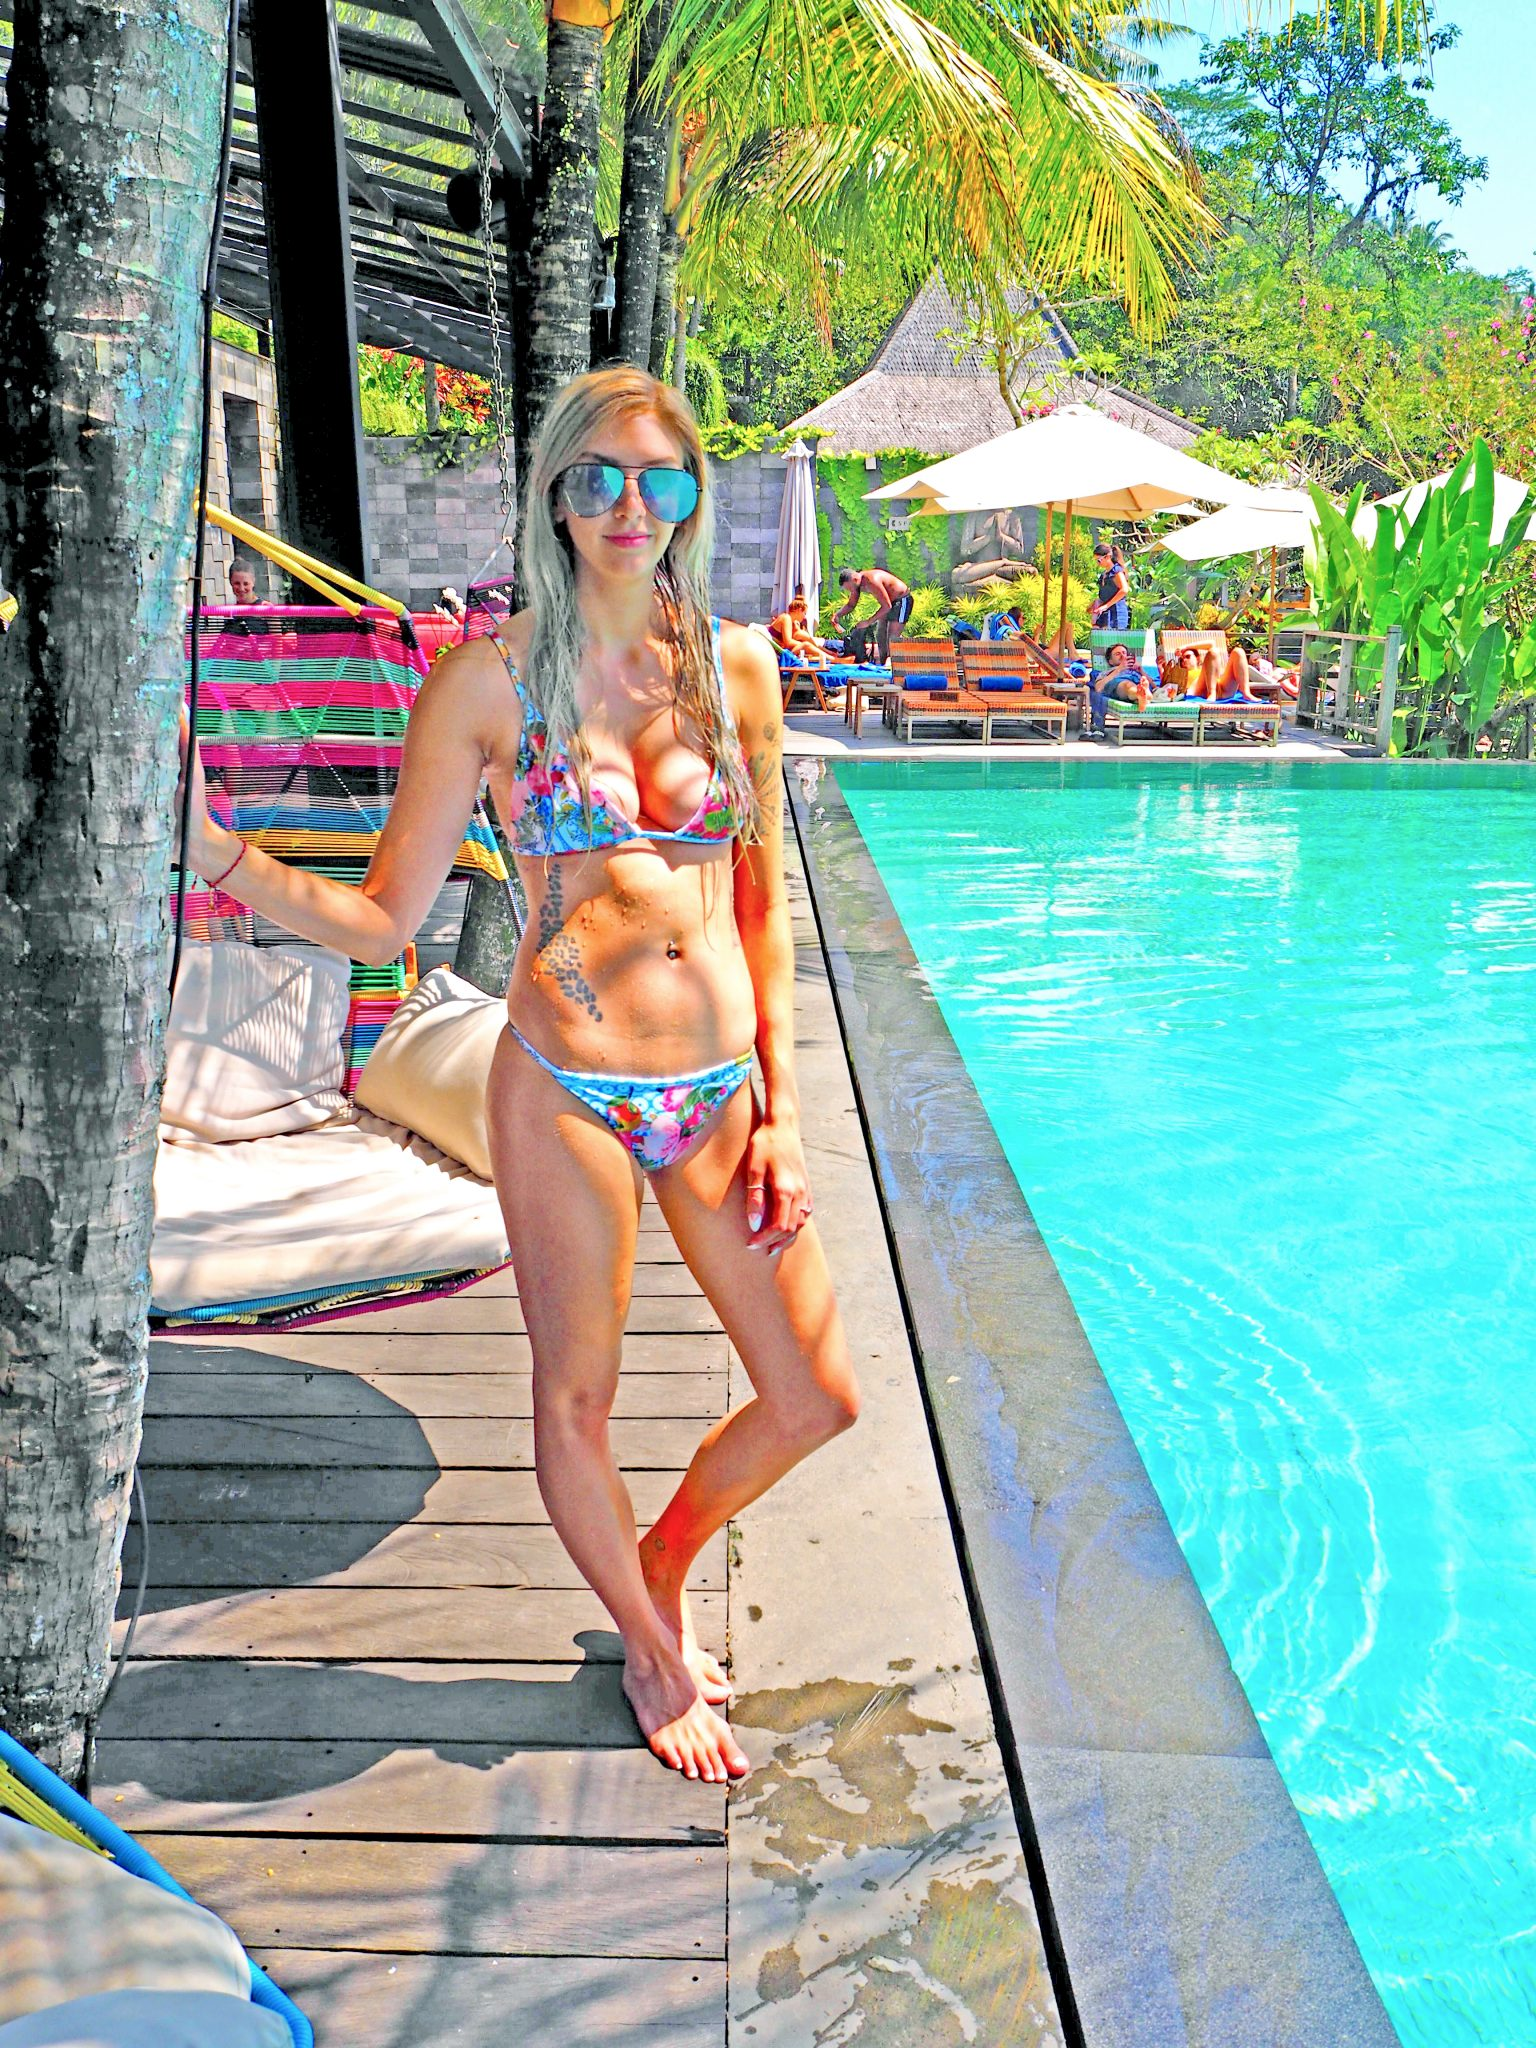 Laura Kate Lucas - Manchester Travel, Fashion and Lifestyle Blogger | Packing List Essentials Bali - Panasonic Waterproof Camera